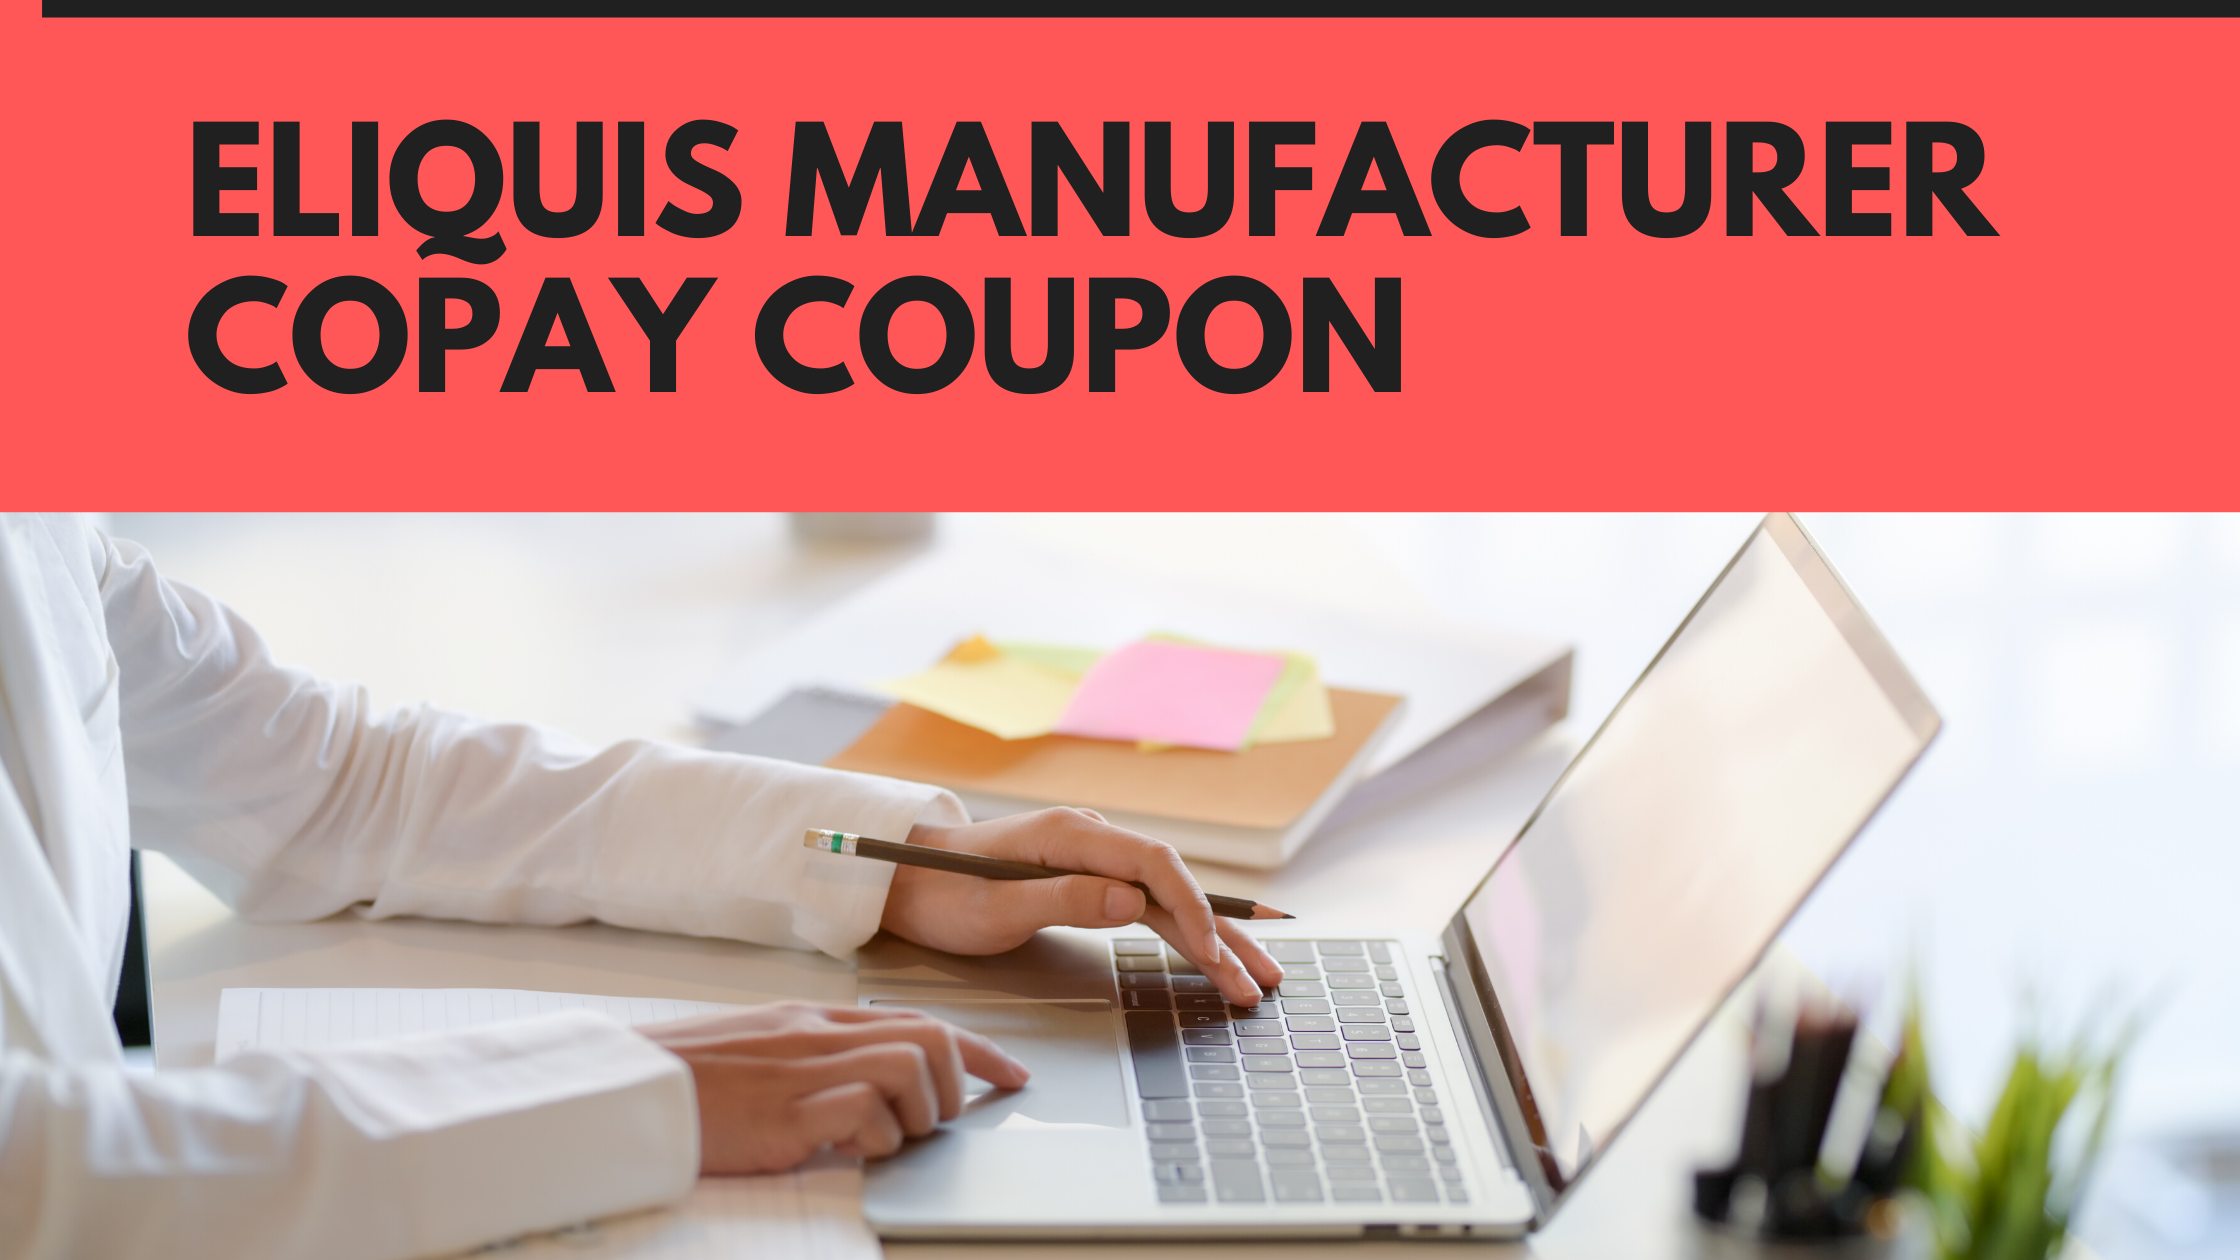 Eliquis manufacturer copay coupon